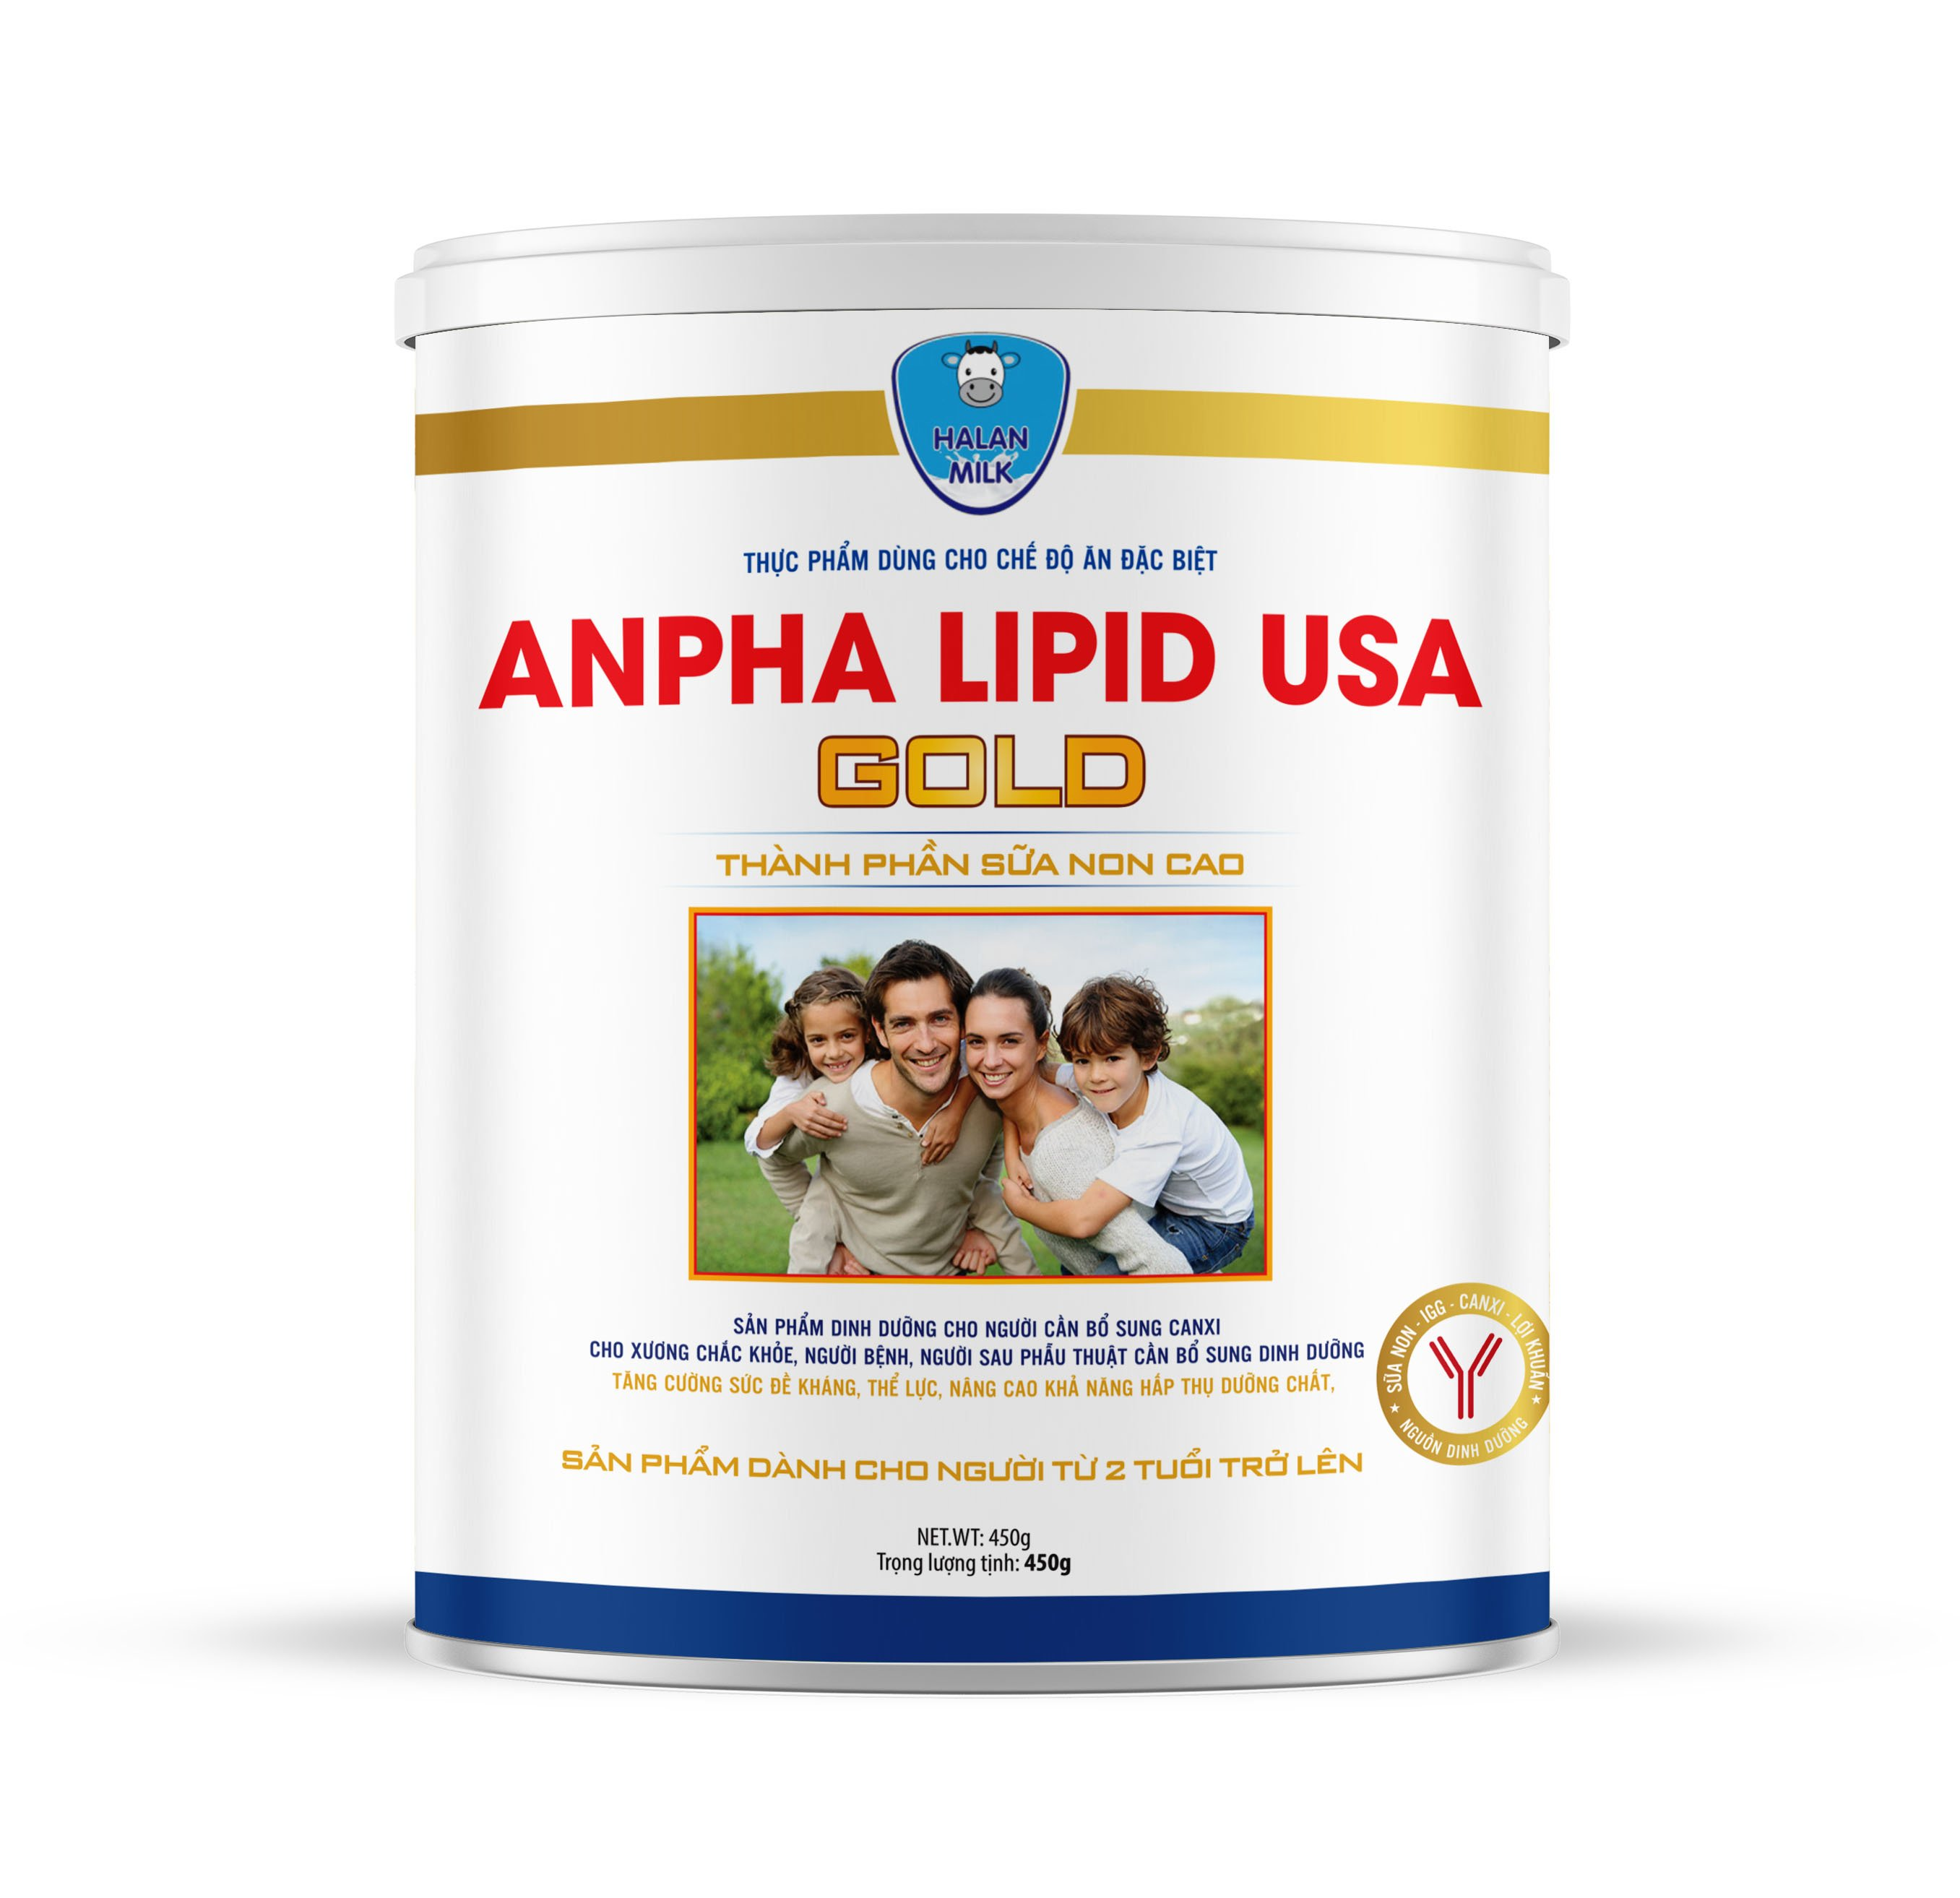 ANPHA LIPID USA GOLD 450g